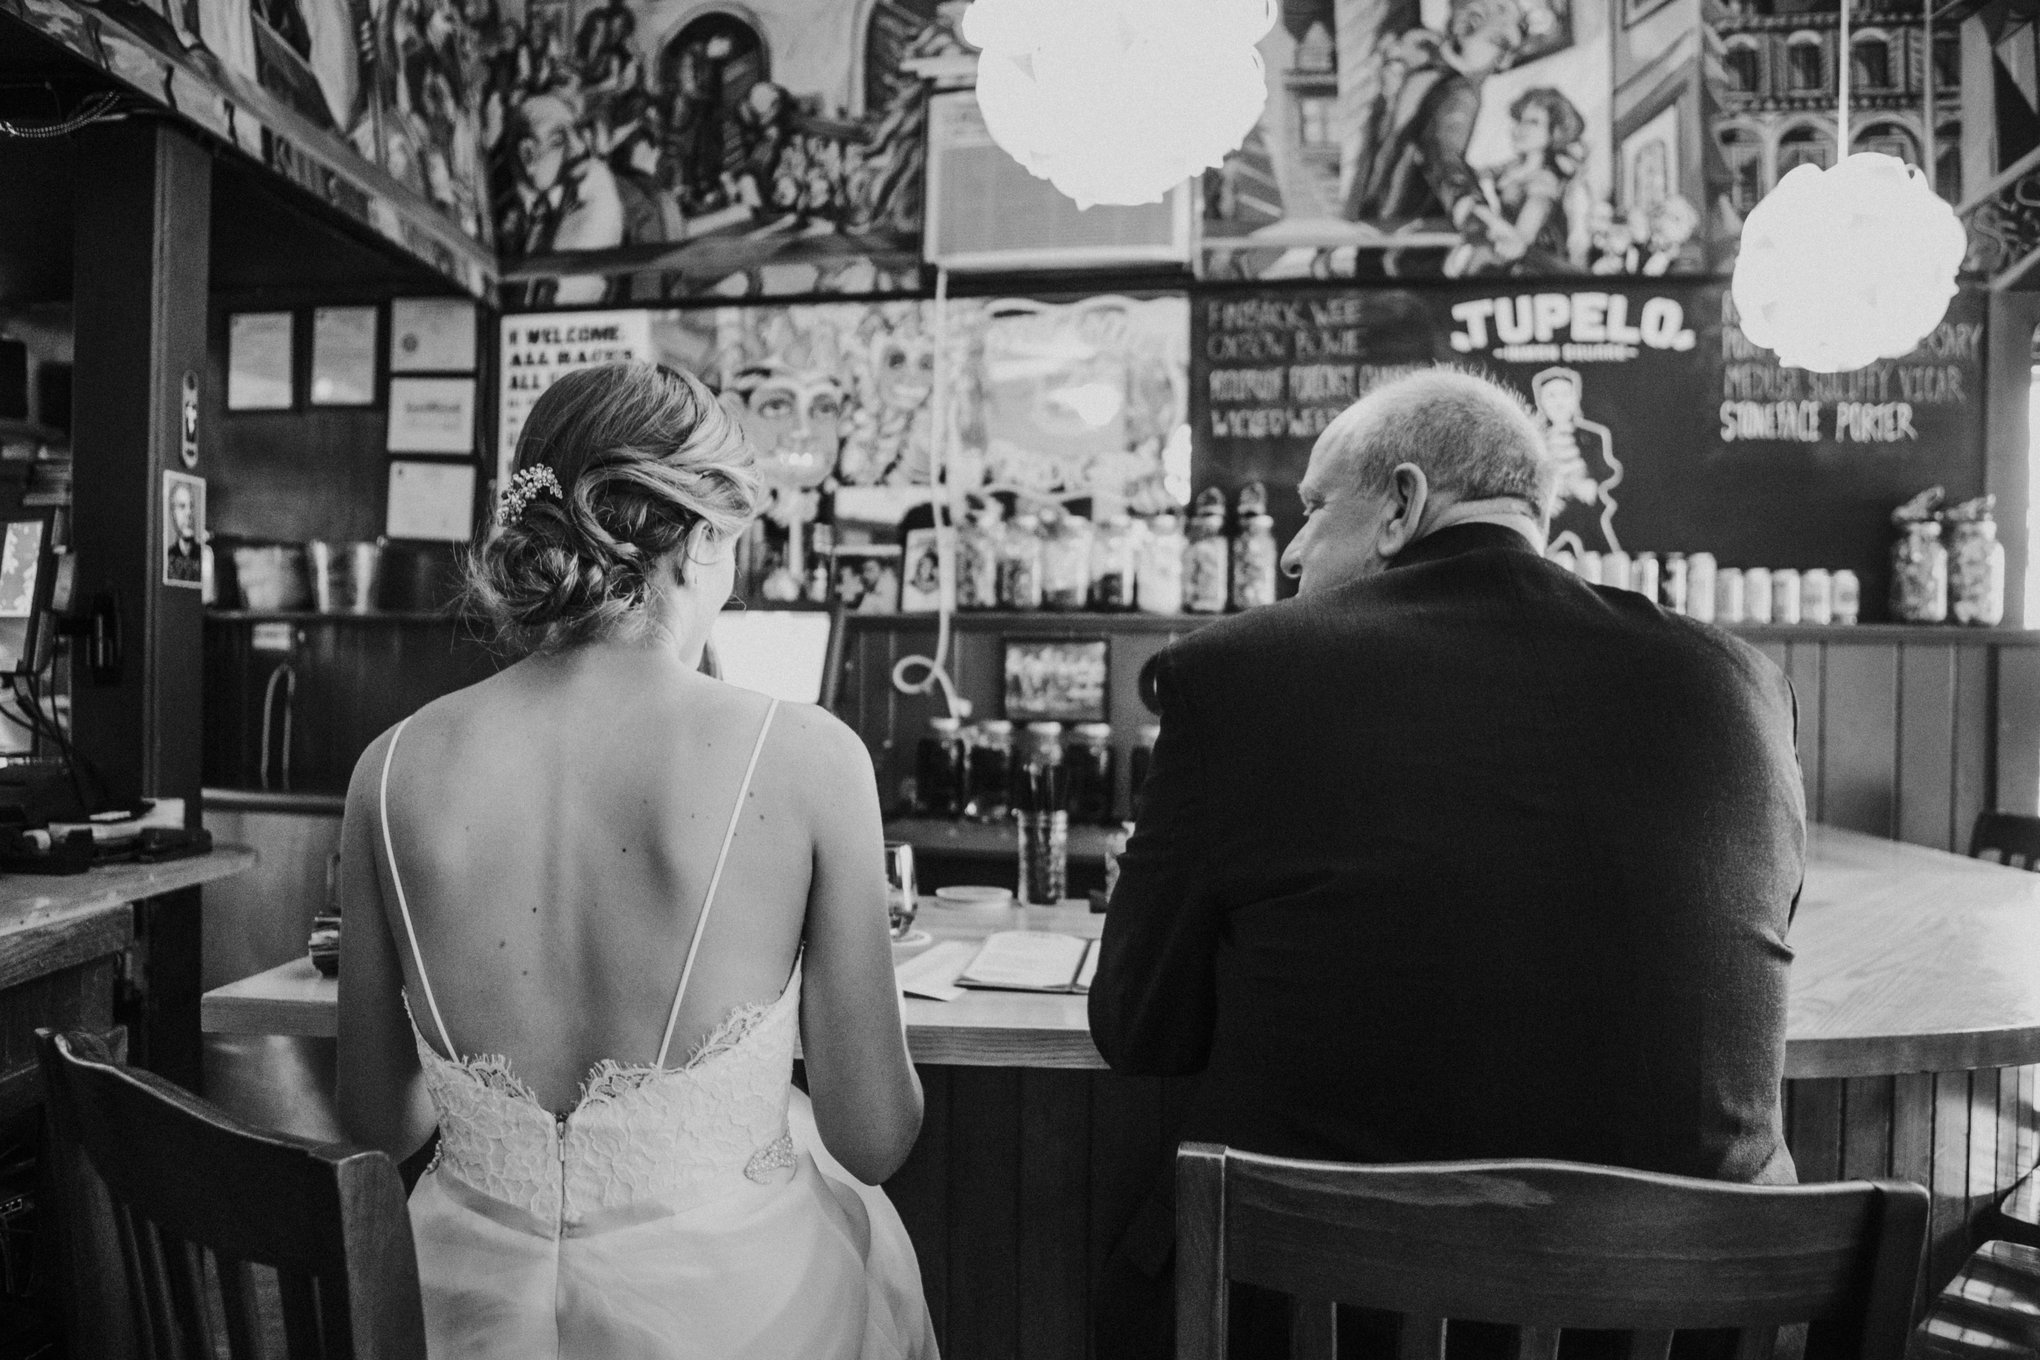 Cambridge_Puritan_Co_Wedding_Photographer_Harvard_36.jpg